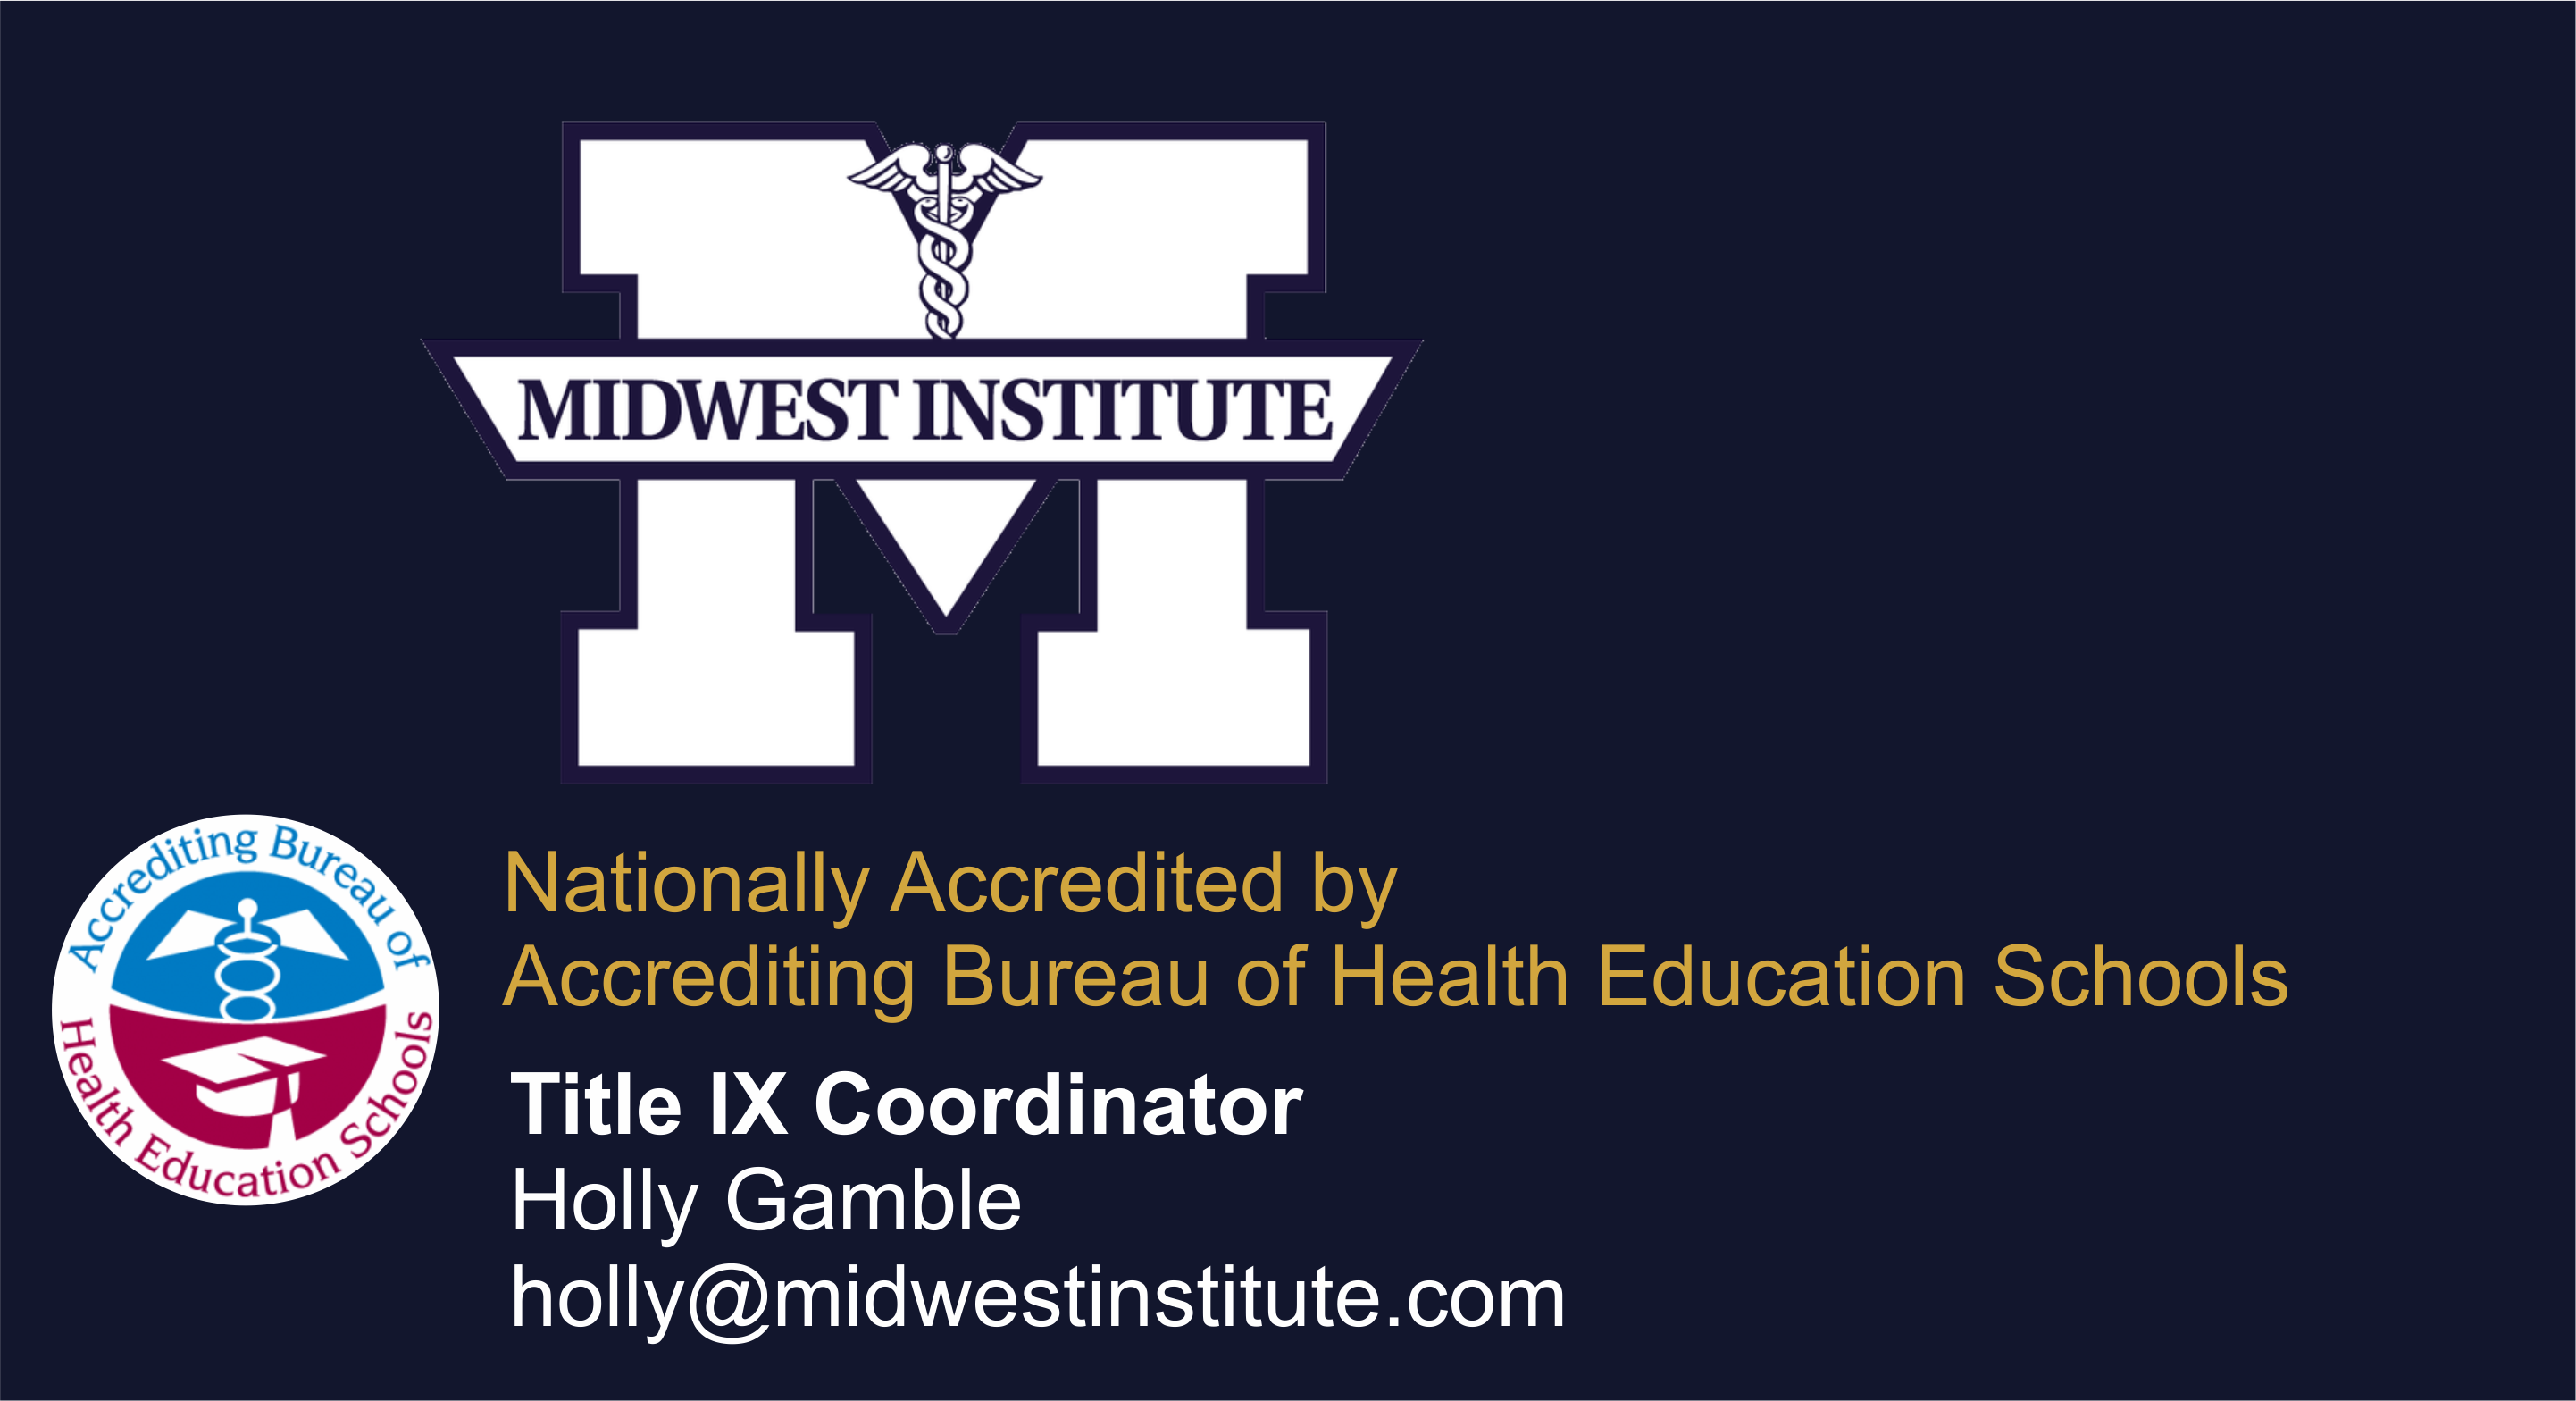 Midwest Institute Logo and Title IX Coordinator Contact